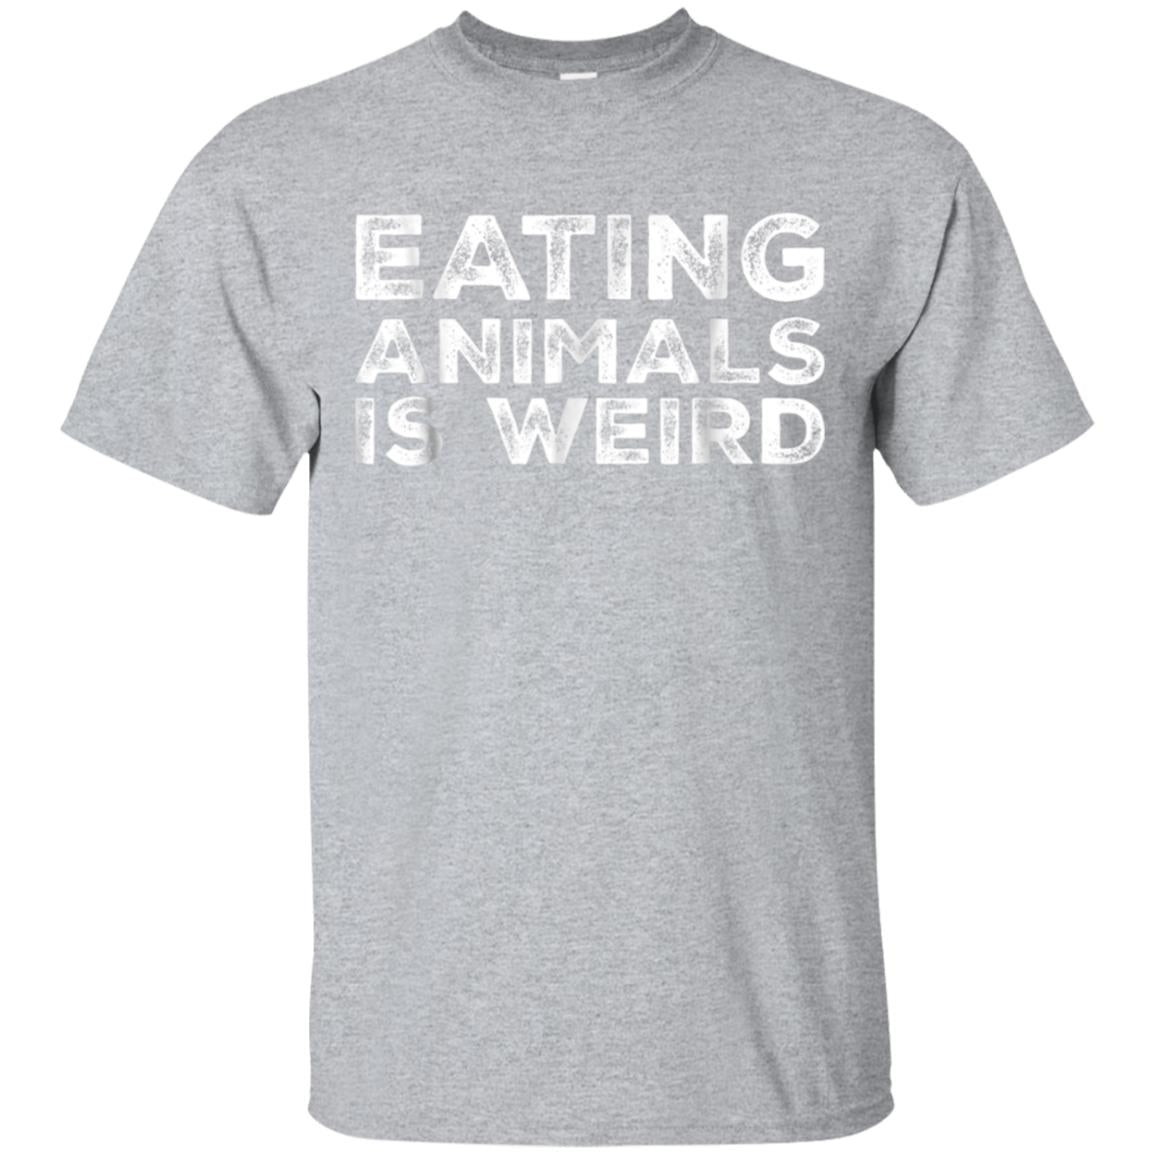 Eating Animals Is Weird T-Shirt - Vegan Vegetarian Funny Tee 99promocode